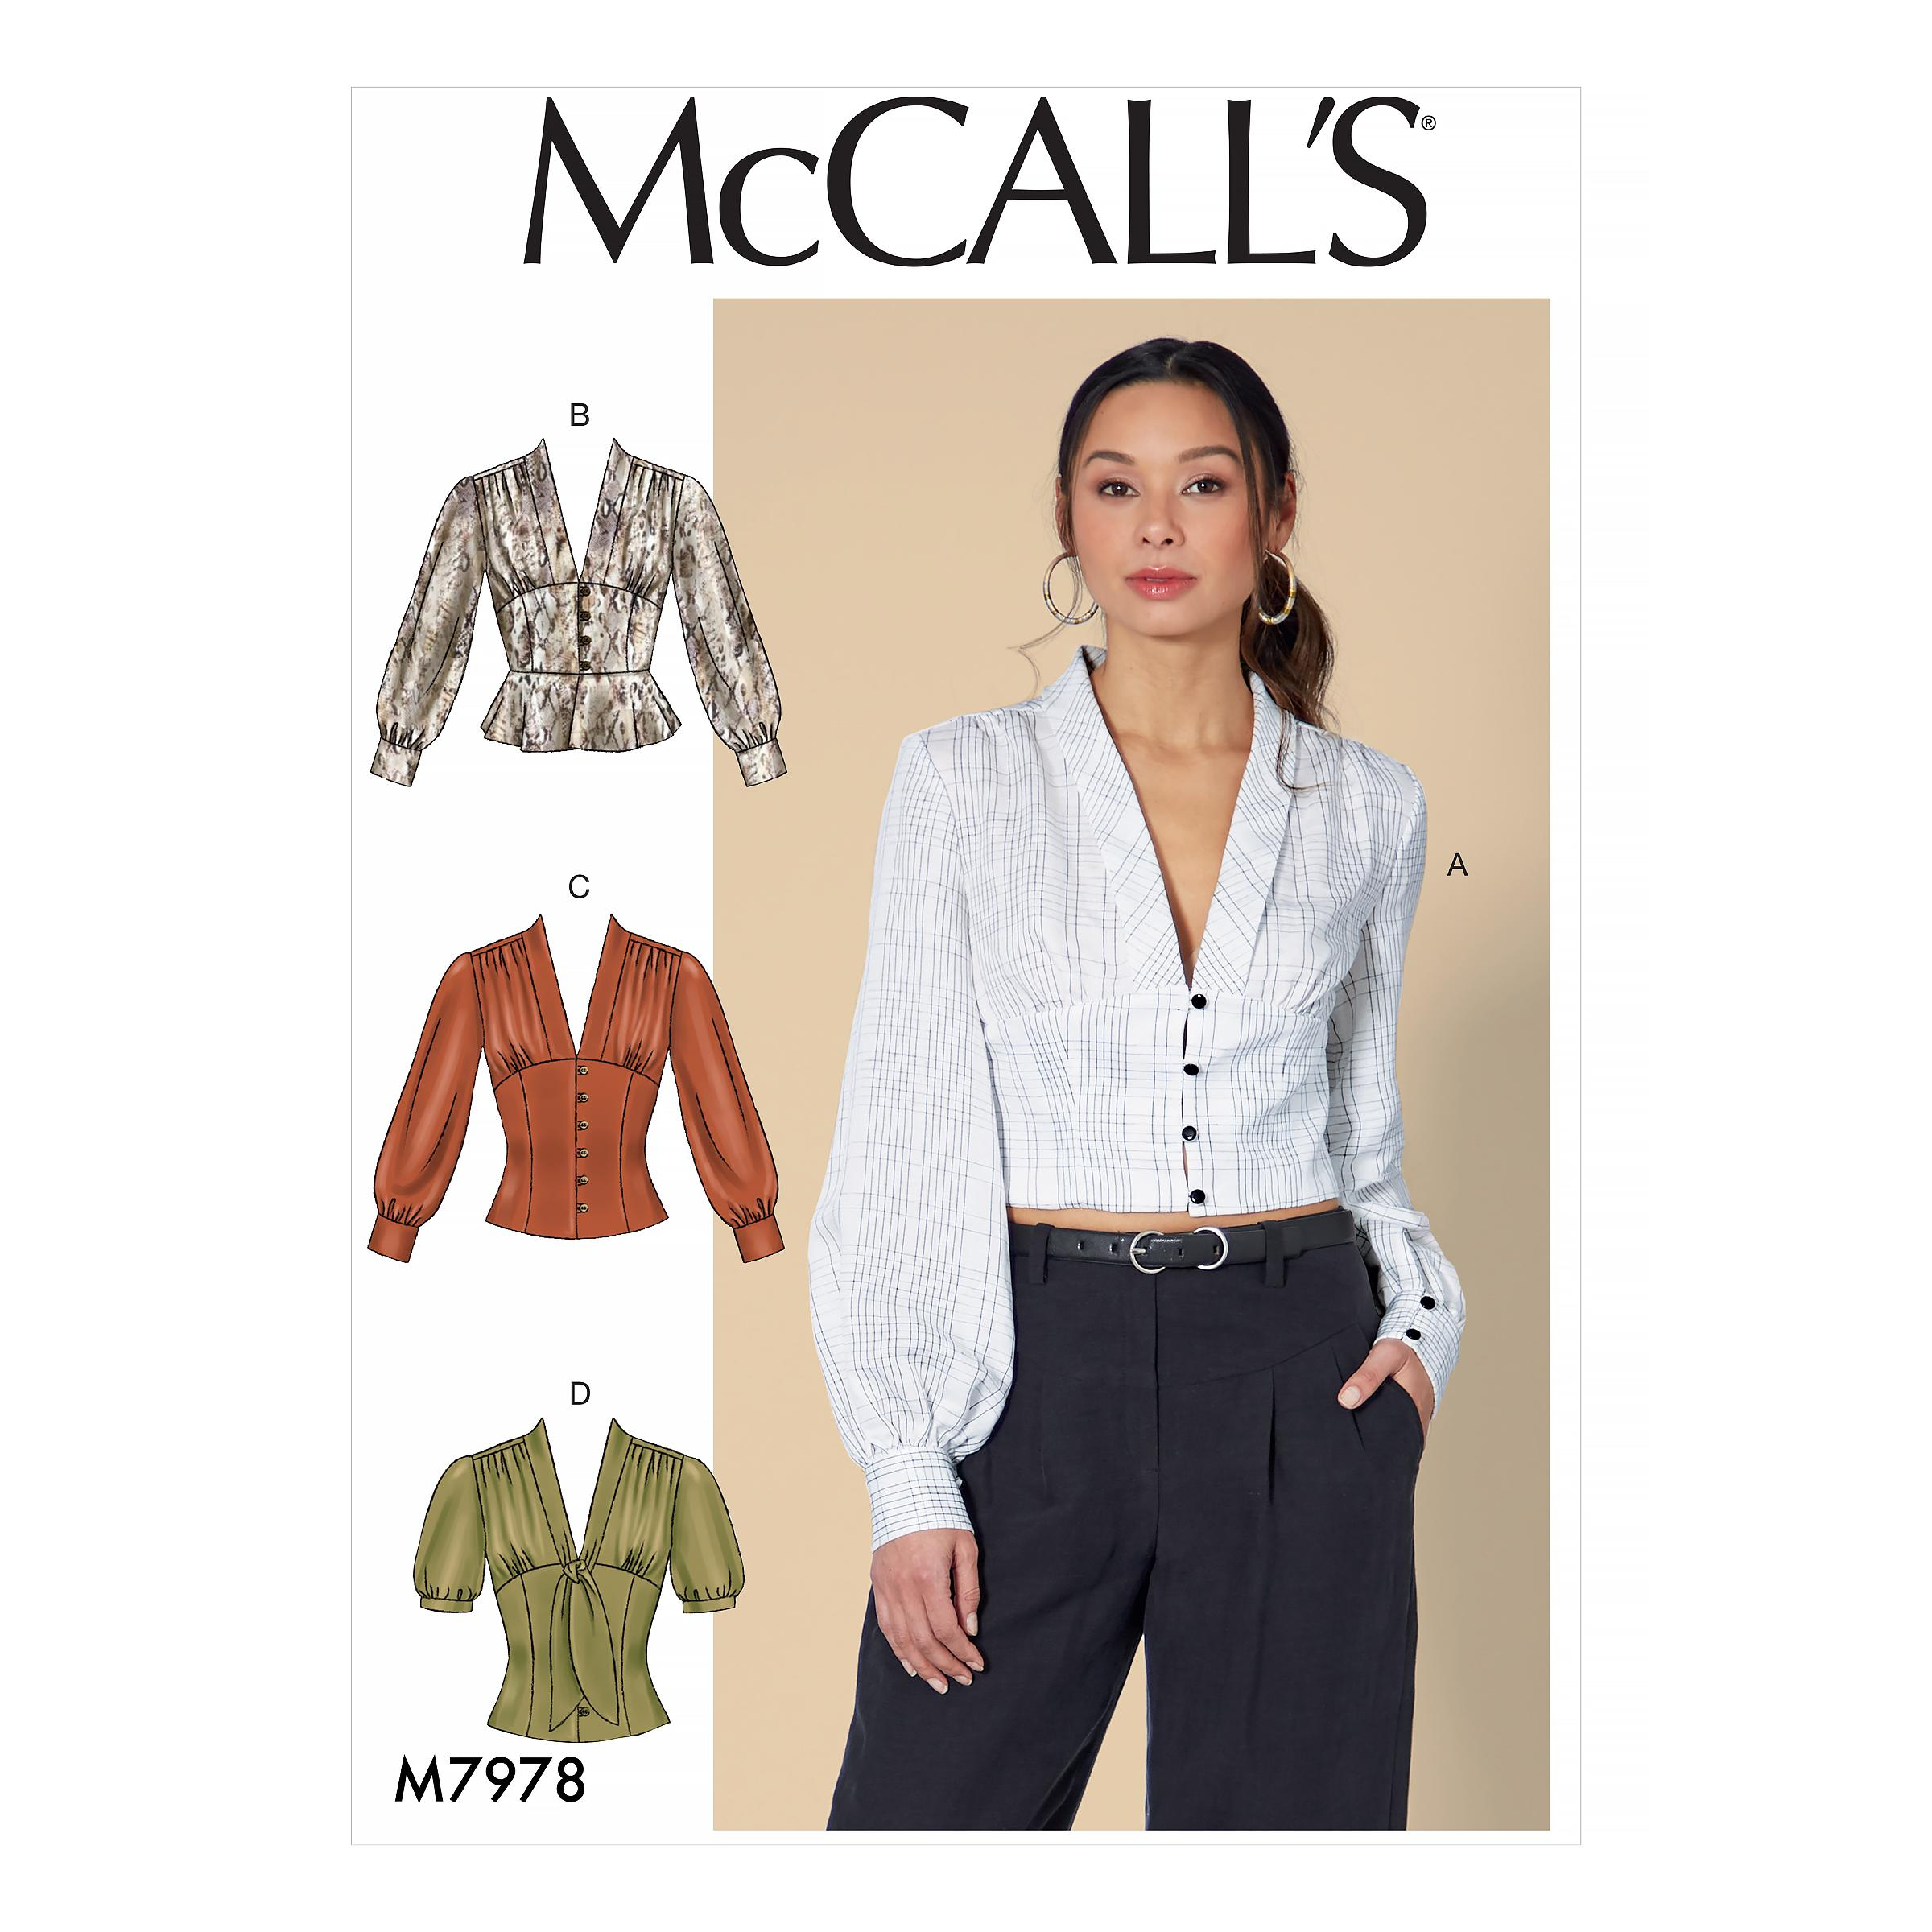 McCalls M7978 Misses Tops